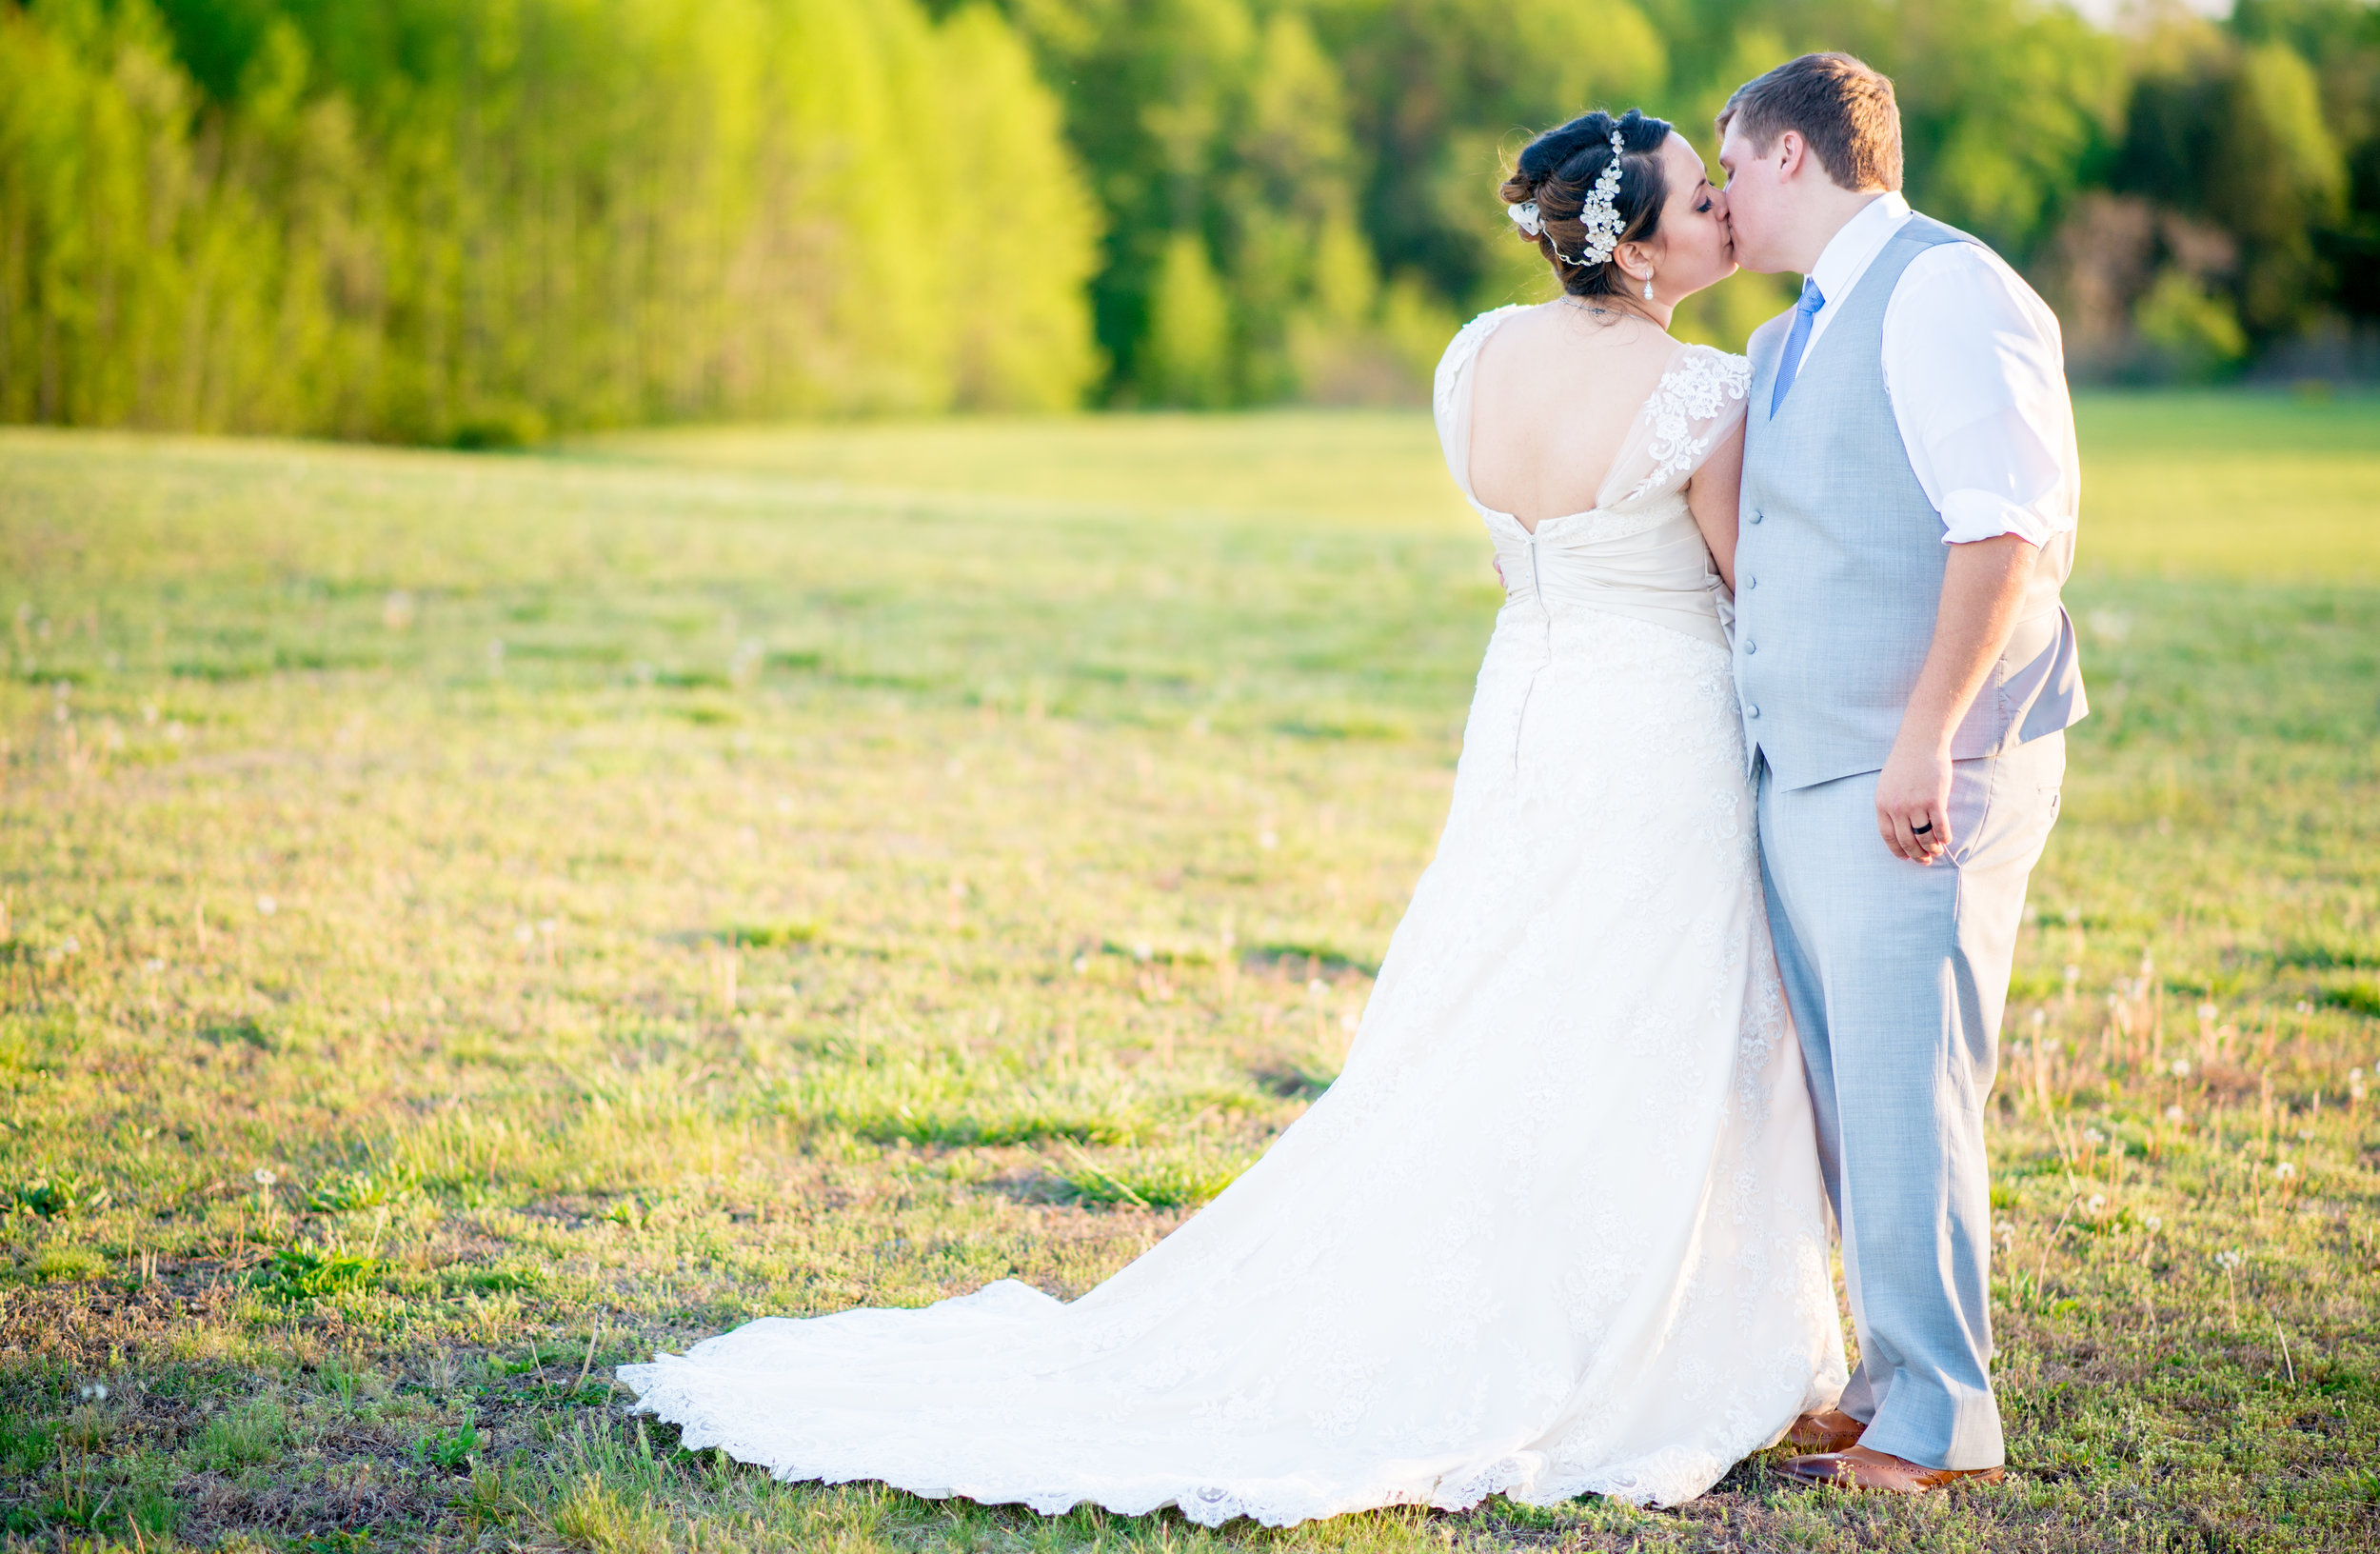 You made us feel comfortable and confident and you were always uplifting! You responded to us quickly, you were always on time, and the packages we received were wonderful!  - Brittany & Jimmy (Bride & Groom)